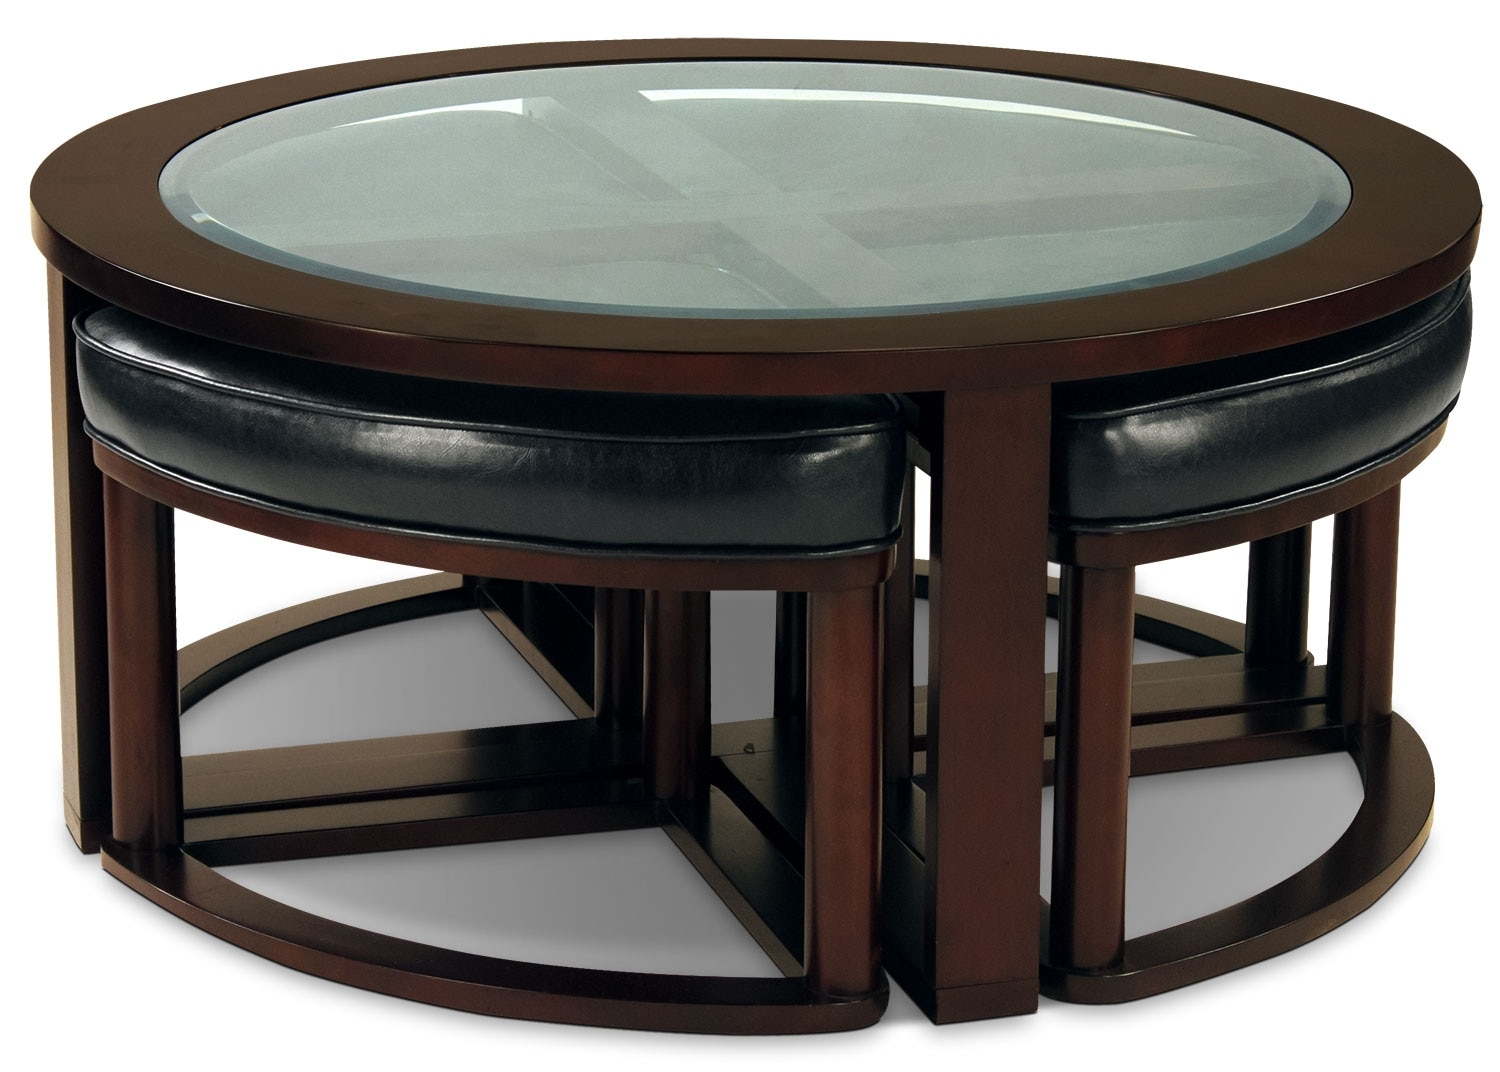 Center Tables With Storage Sierra Coffee Table With Four Ottoman Wedge Stools The Brick